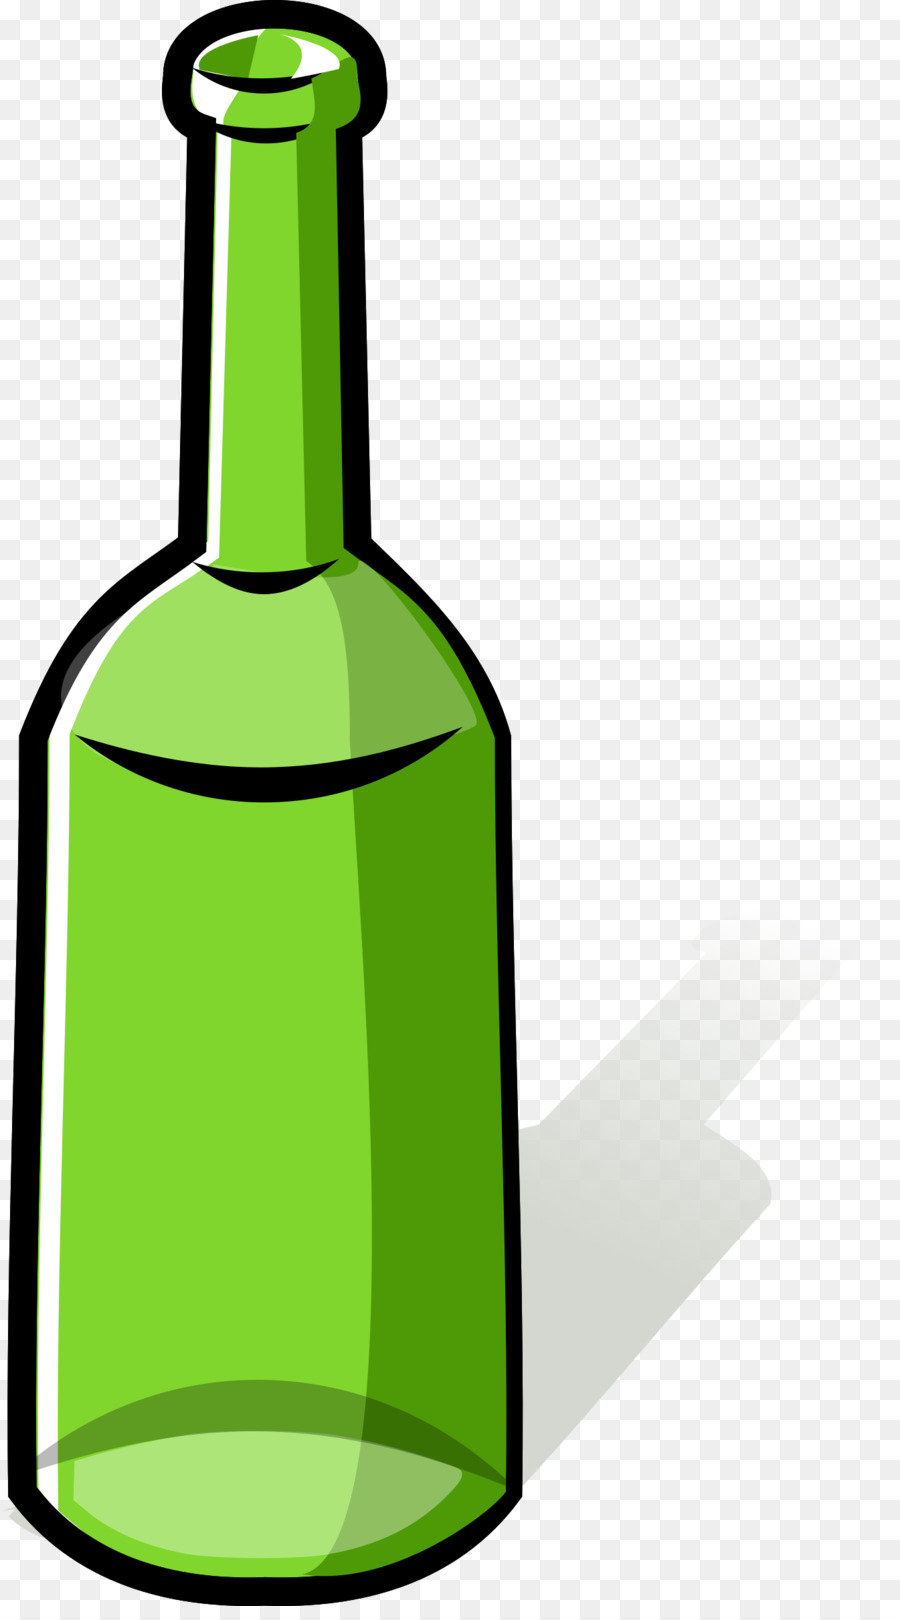 white wine glass bottle clip art bottle png download 1345 2400 rh kisspng com bottle clipart images clipart bottle of water